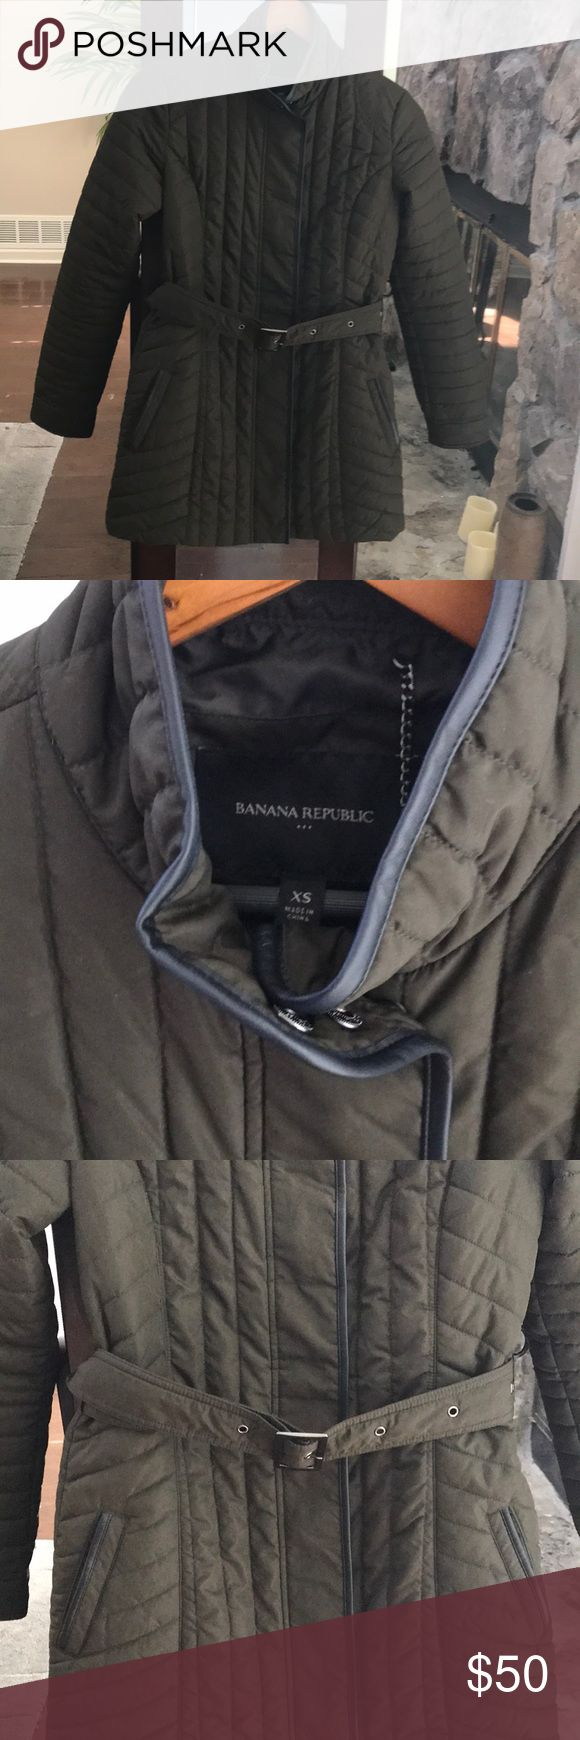 SALE - Banana Republic Quilted Puffer Jacket Only worn twice. Perfect Condition. Color is dark olive green. Can be worn with or without belt. Perfect fashionable yet warm coat. Leather trim. Two front pockets. MOVING soon so make me an offer!! Banana Republic Jackets & Coats